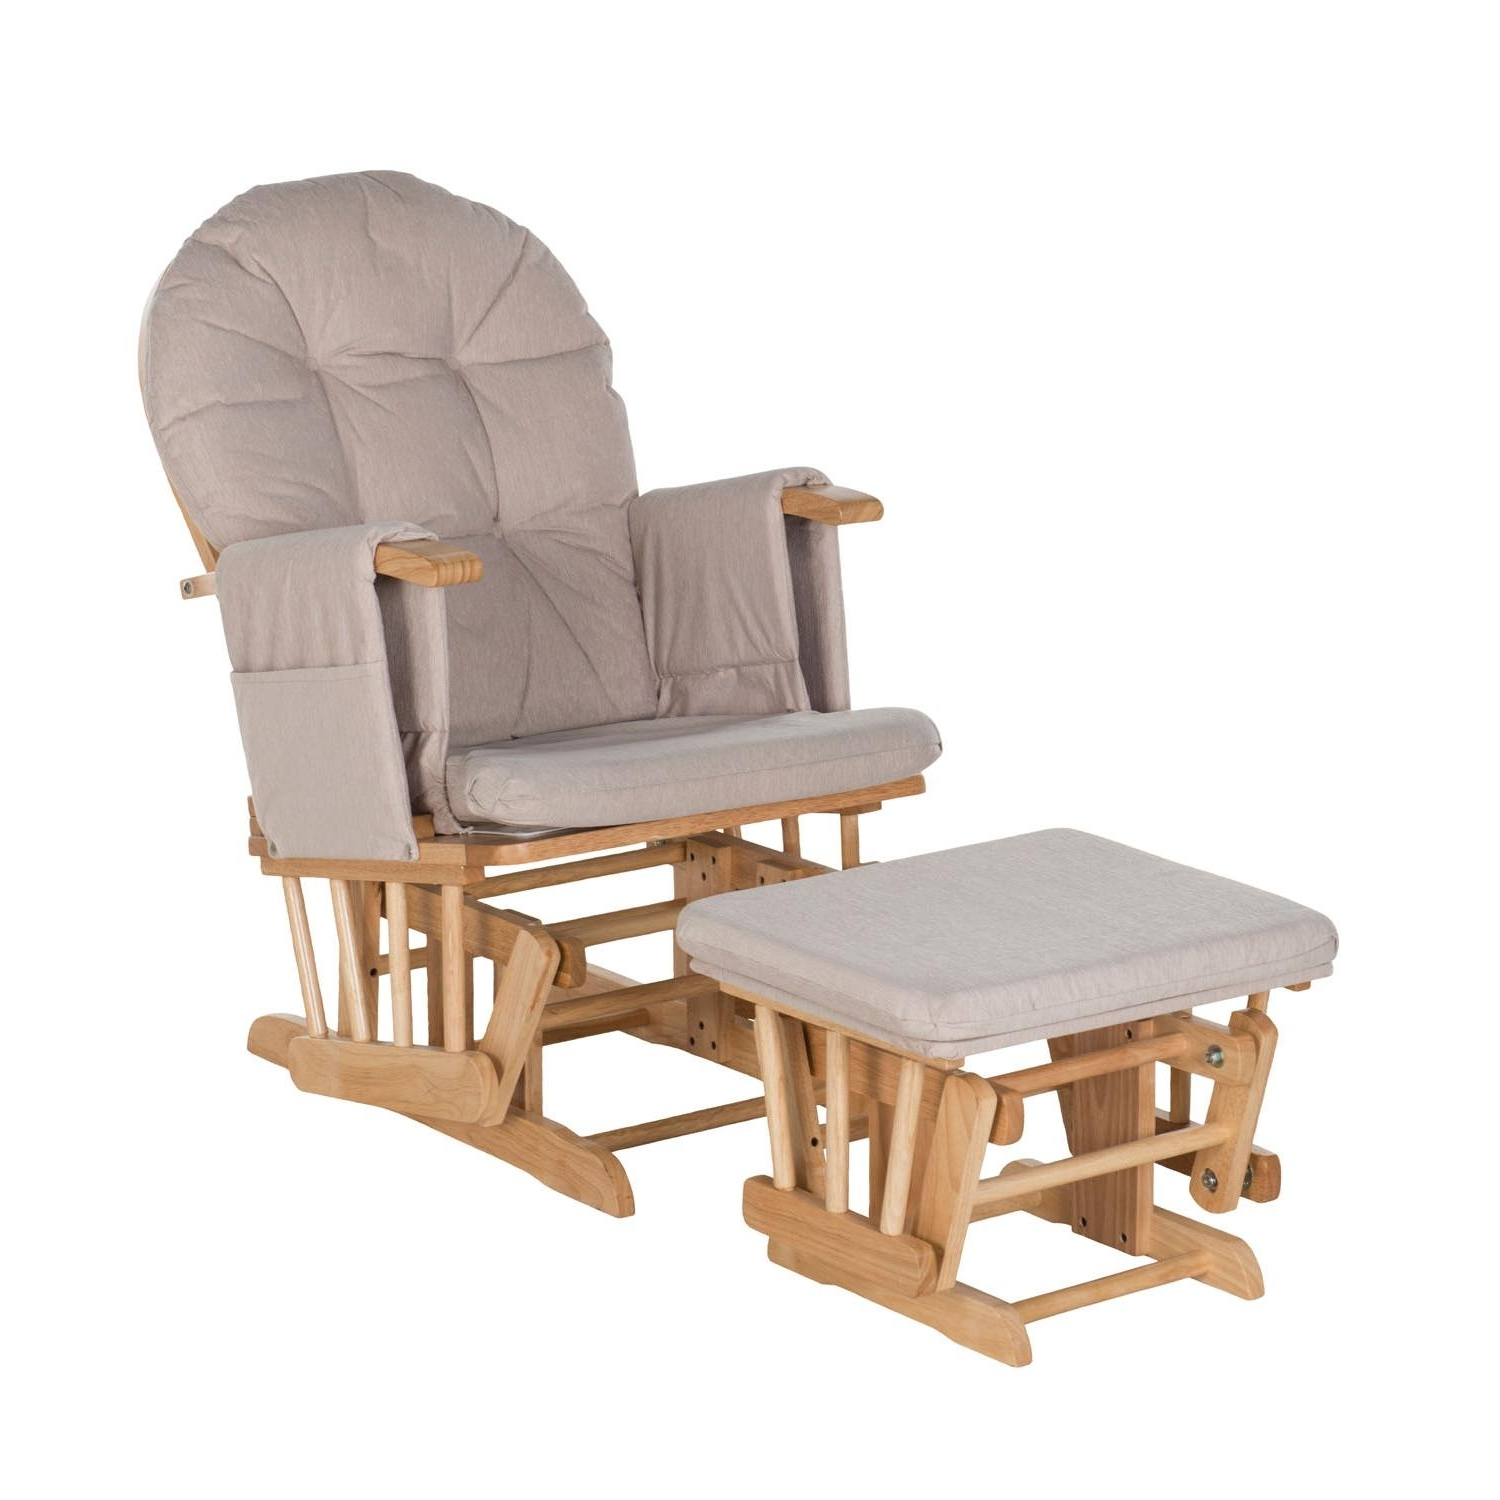 Maternity Rocking Chair – 28 Images – Supremo Bambino Nursing Glider Regarding Most Recent Rocking Chairs For Nursing (View 12 of 20)